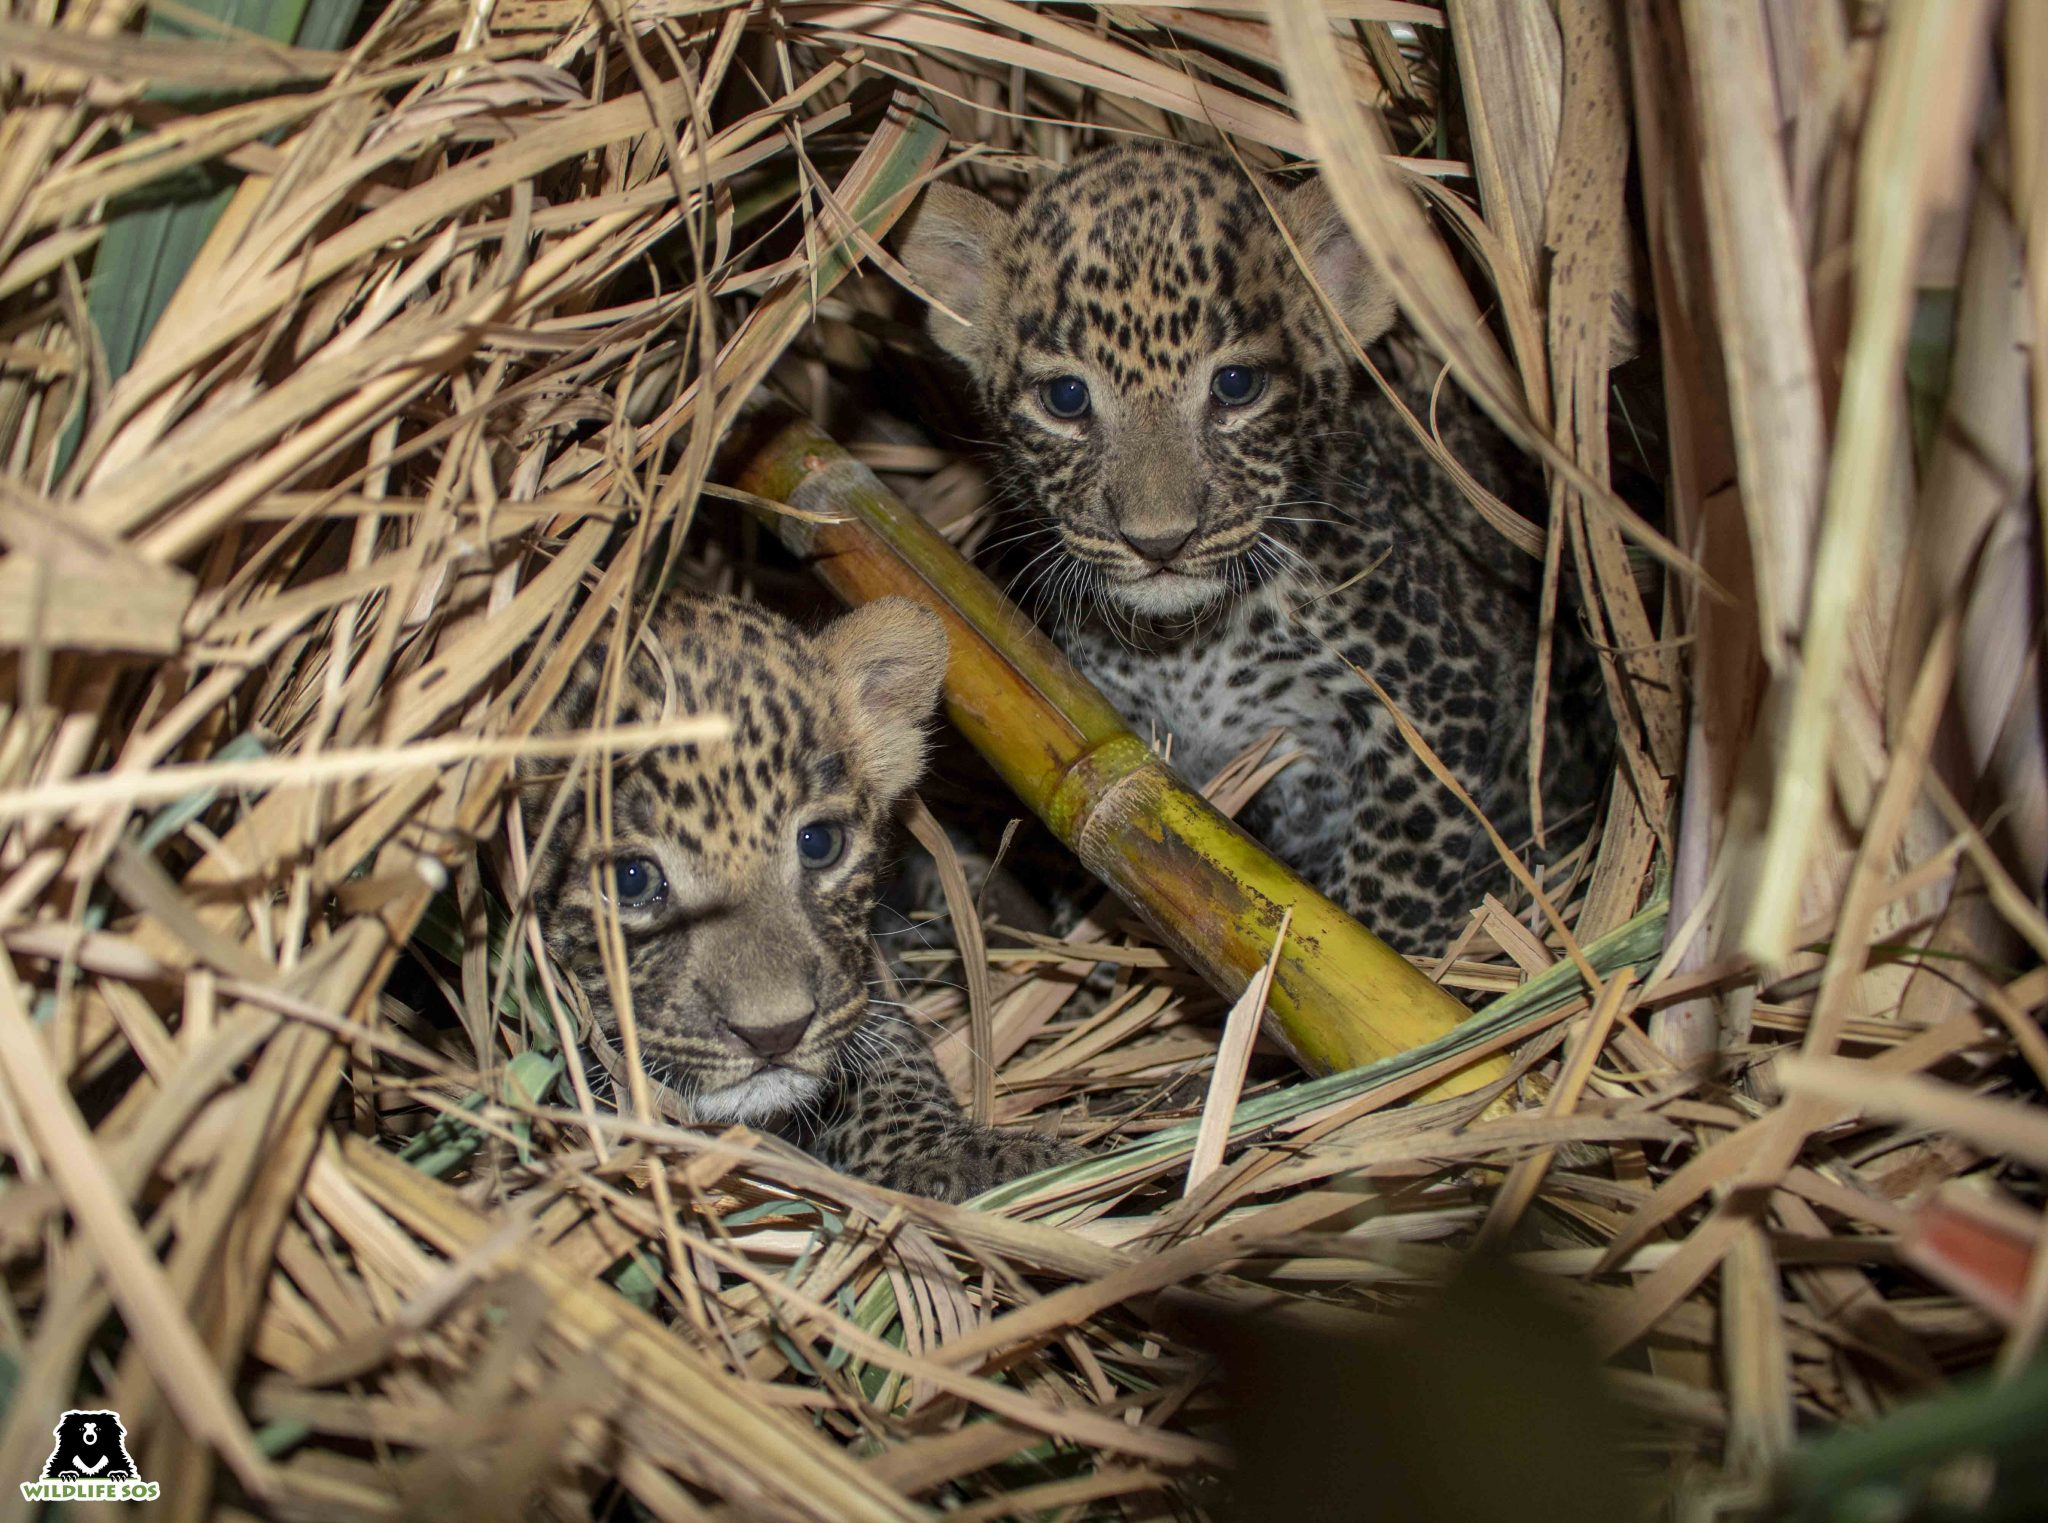 The two cubs were found in a sugarcane field in Otur Village. Image Courtesy of Wildlife SOS